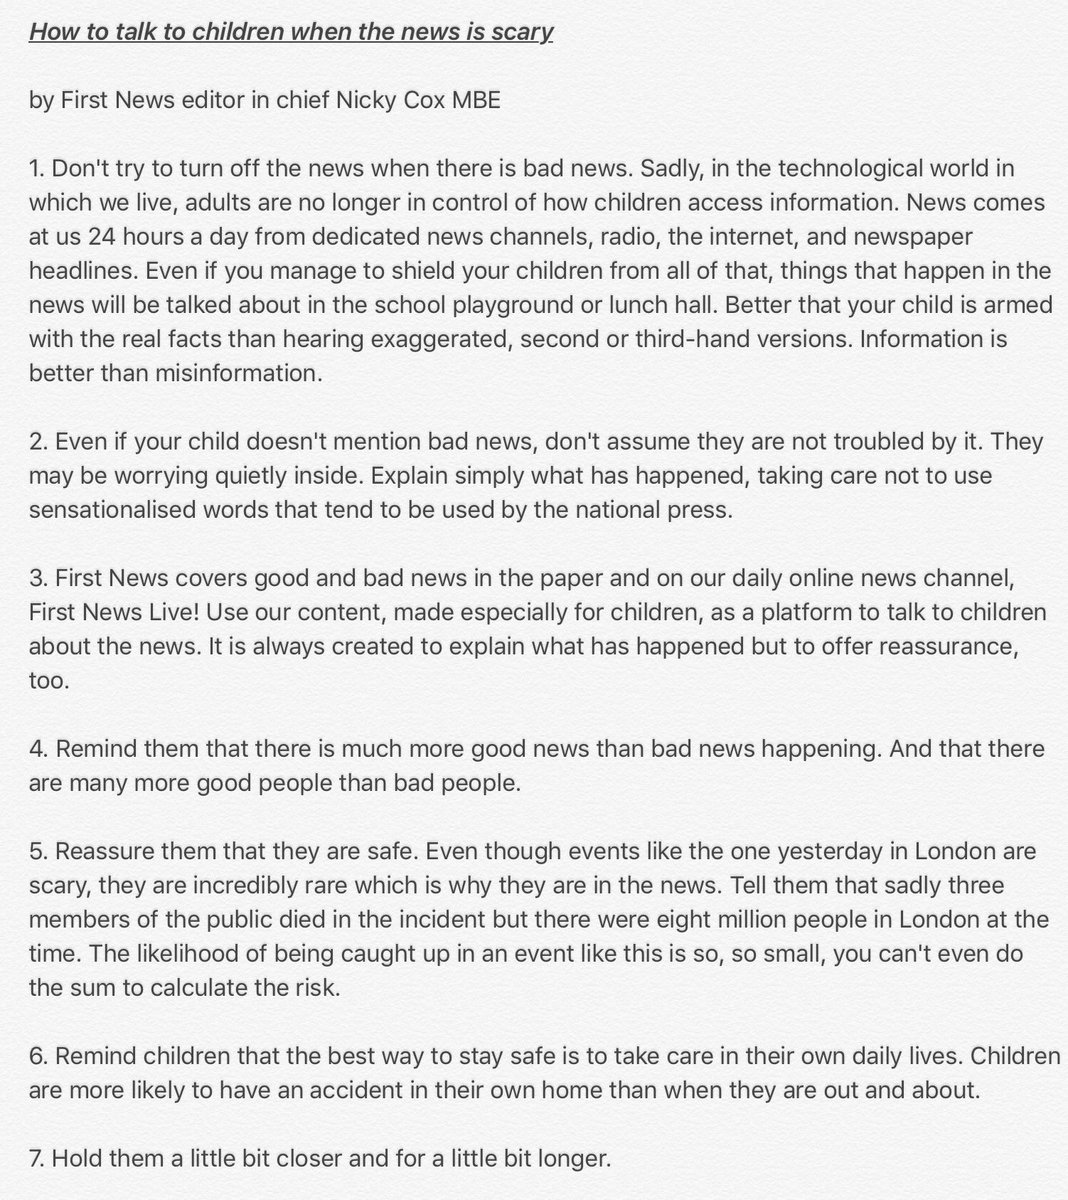 My 7 tips about talking to children when there is bad news. #Westminster #terrorattack https://t.co/3jgKT26K4P